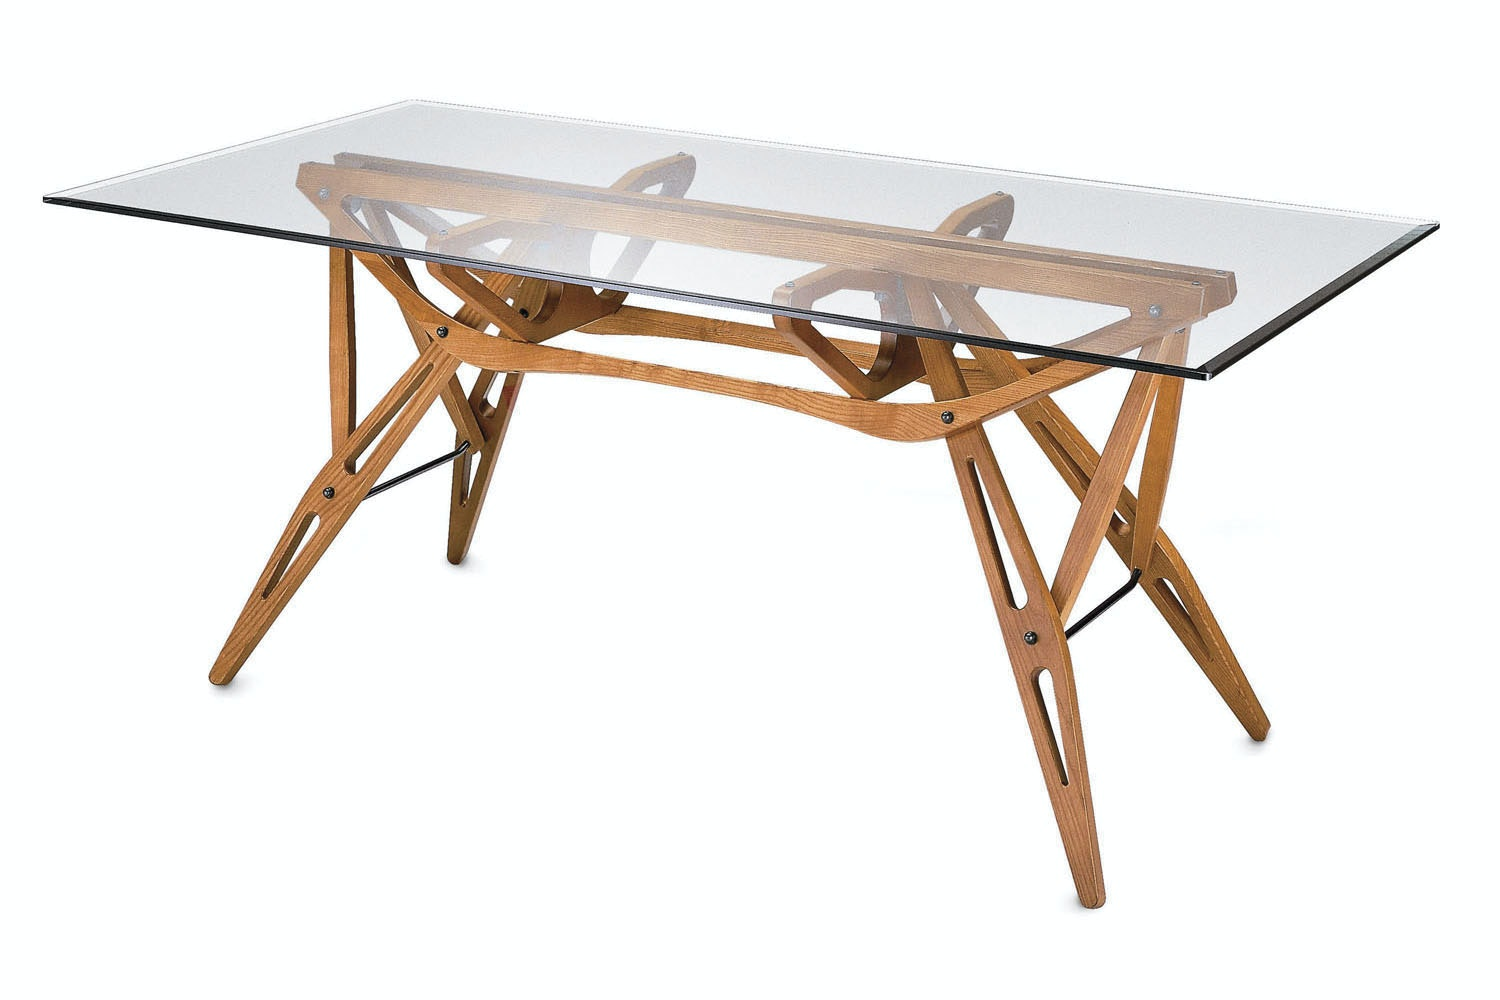 Reale Table by Carlo Mollino for Zanotta